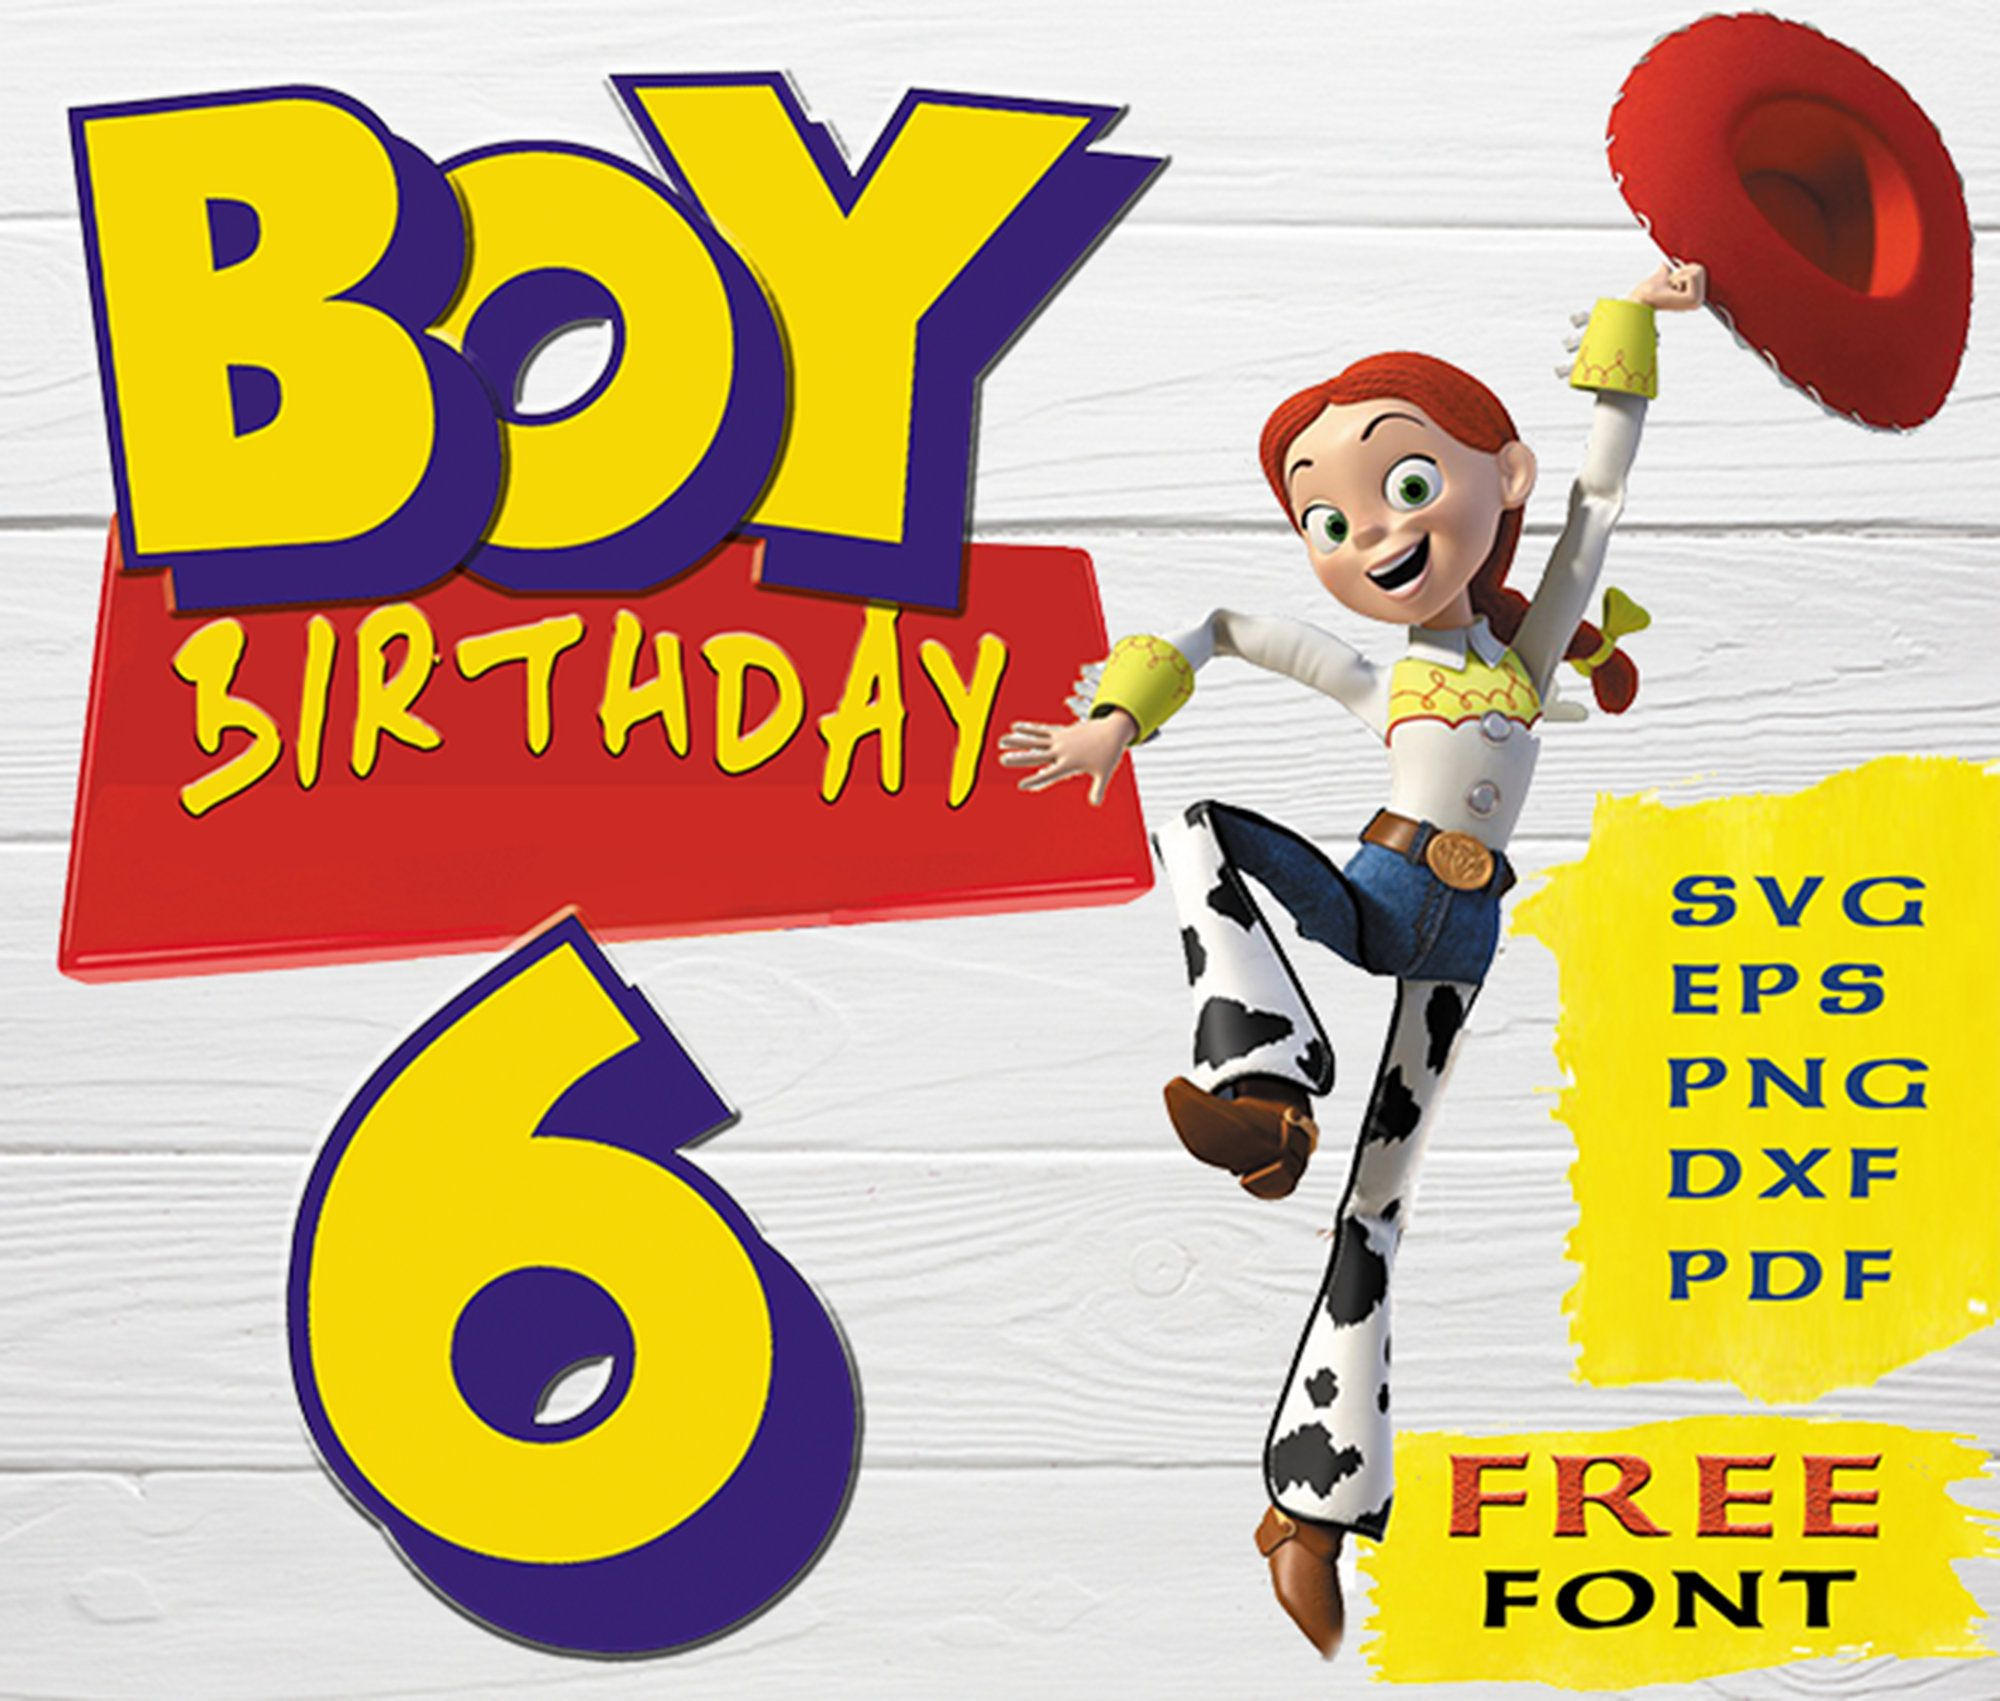 Toy Story 6th Year Birthday Svg Toy Story Svg Toy Story 4 Cutfiles Toy Story Cricut Png Cutfiles For Cricut Silhouette Toy Story Clipart In 2020 Toy Story Birthday Boy Birthday Birthday Toys